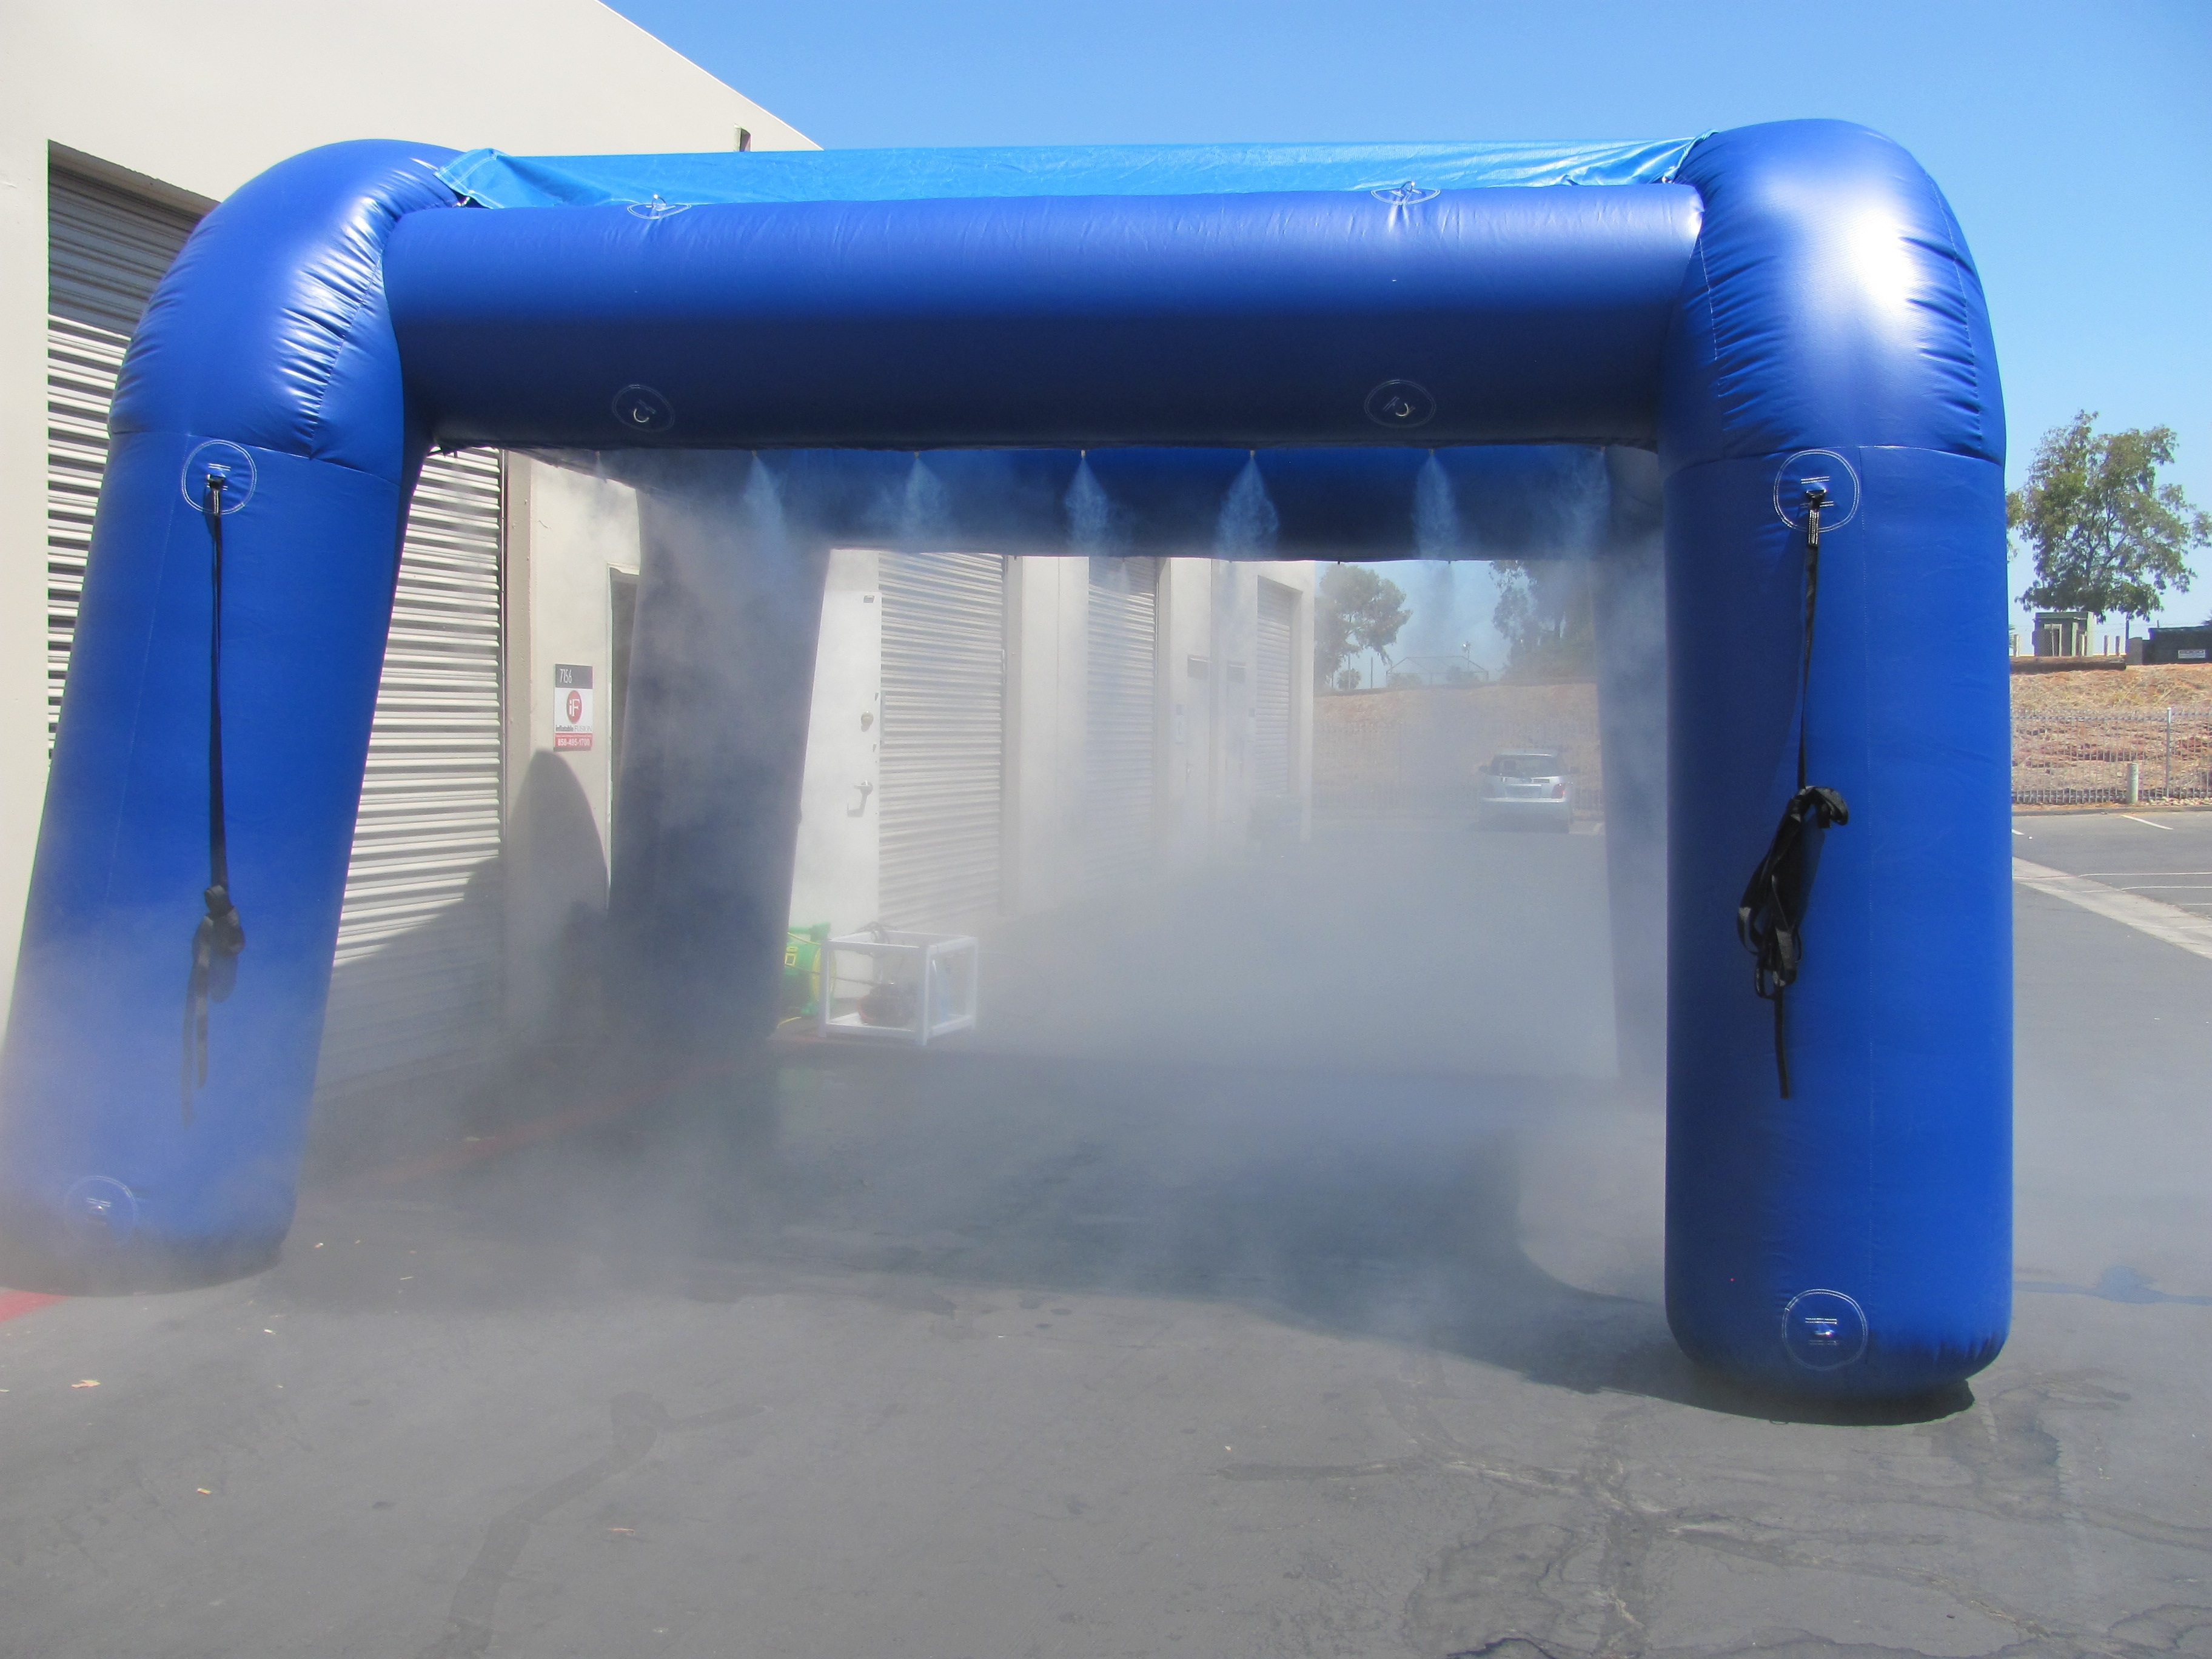 Blue coloured high-pressure oasis misting pavilion producing mist at the empty parking lot.